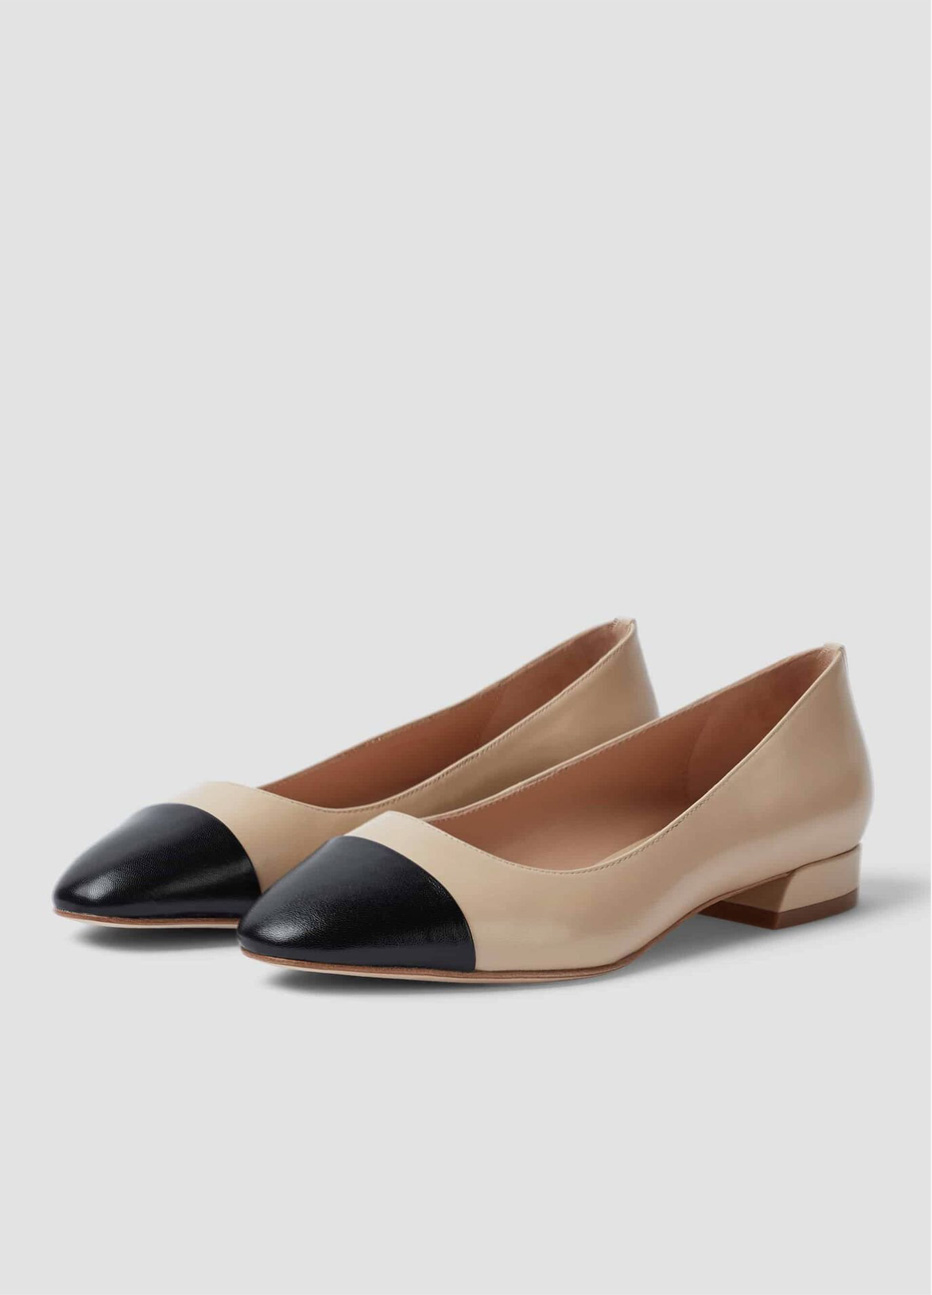 Hobbs heeled ballerina flats in nude with a black toe cap design.